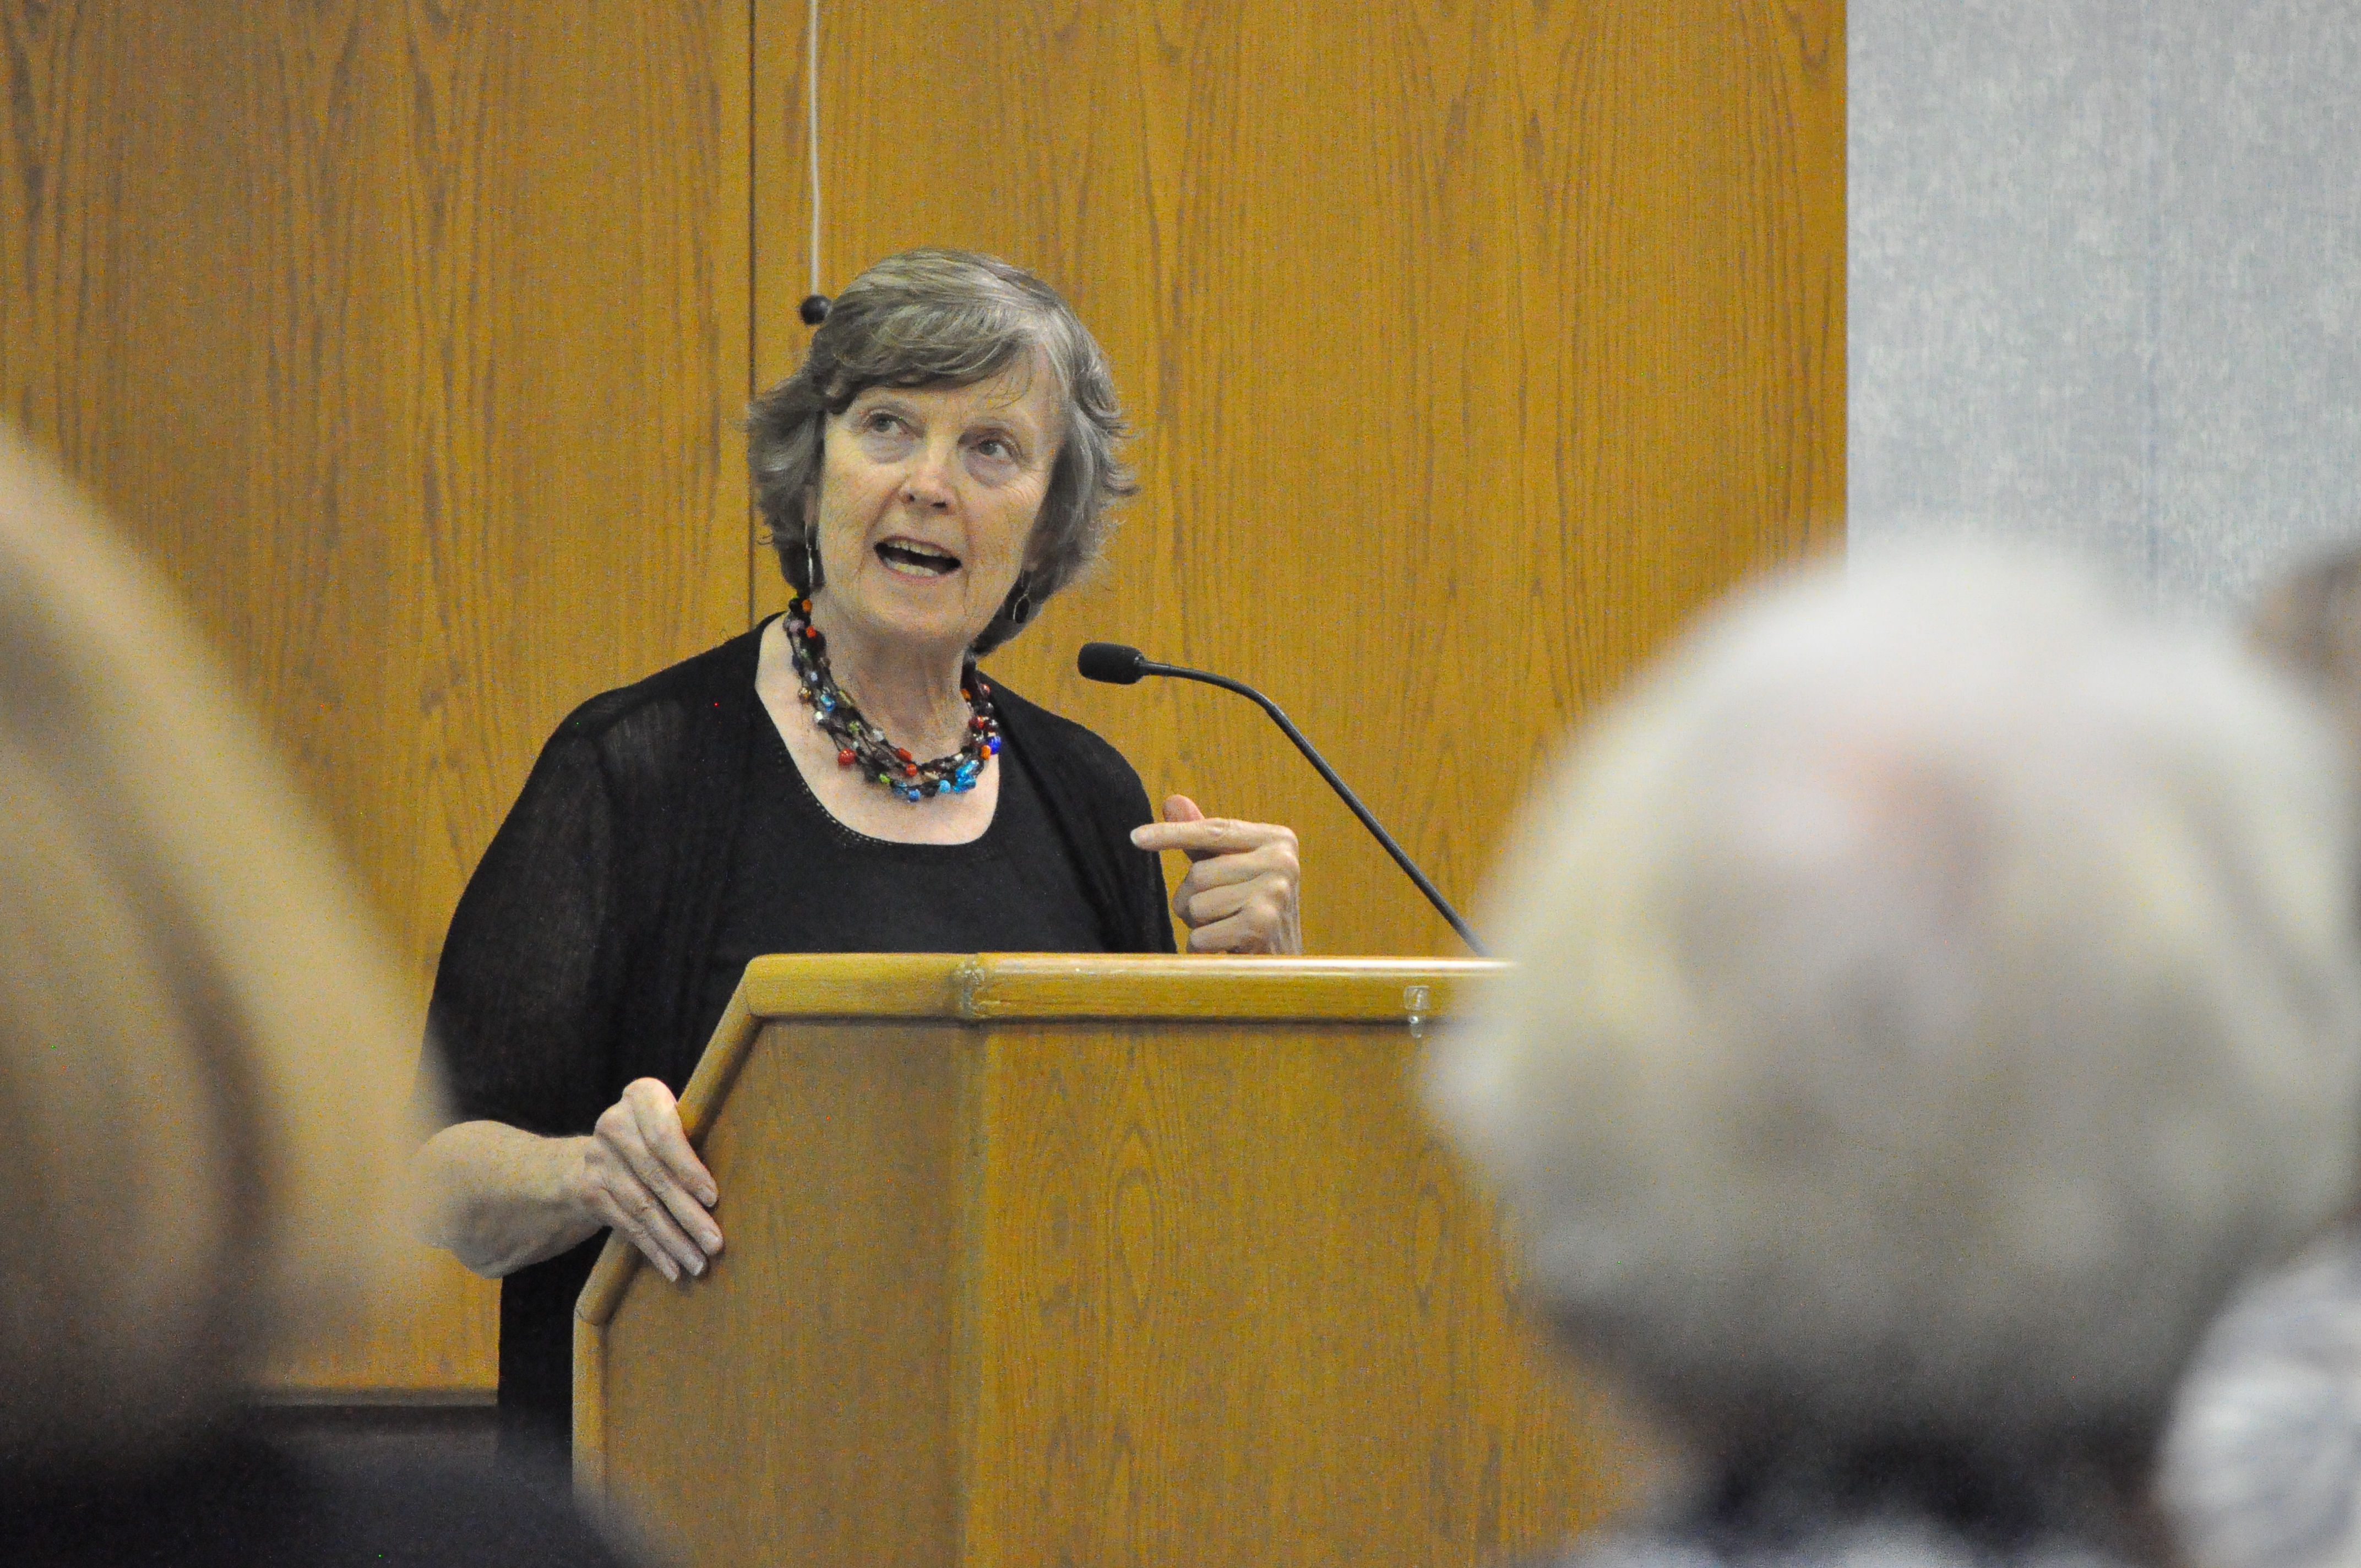 Lois Campbell, president of the Pastoral Council of the Catholic Community of the East End of Pittsburgh.